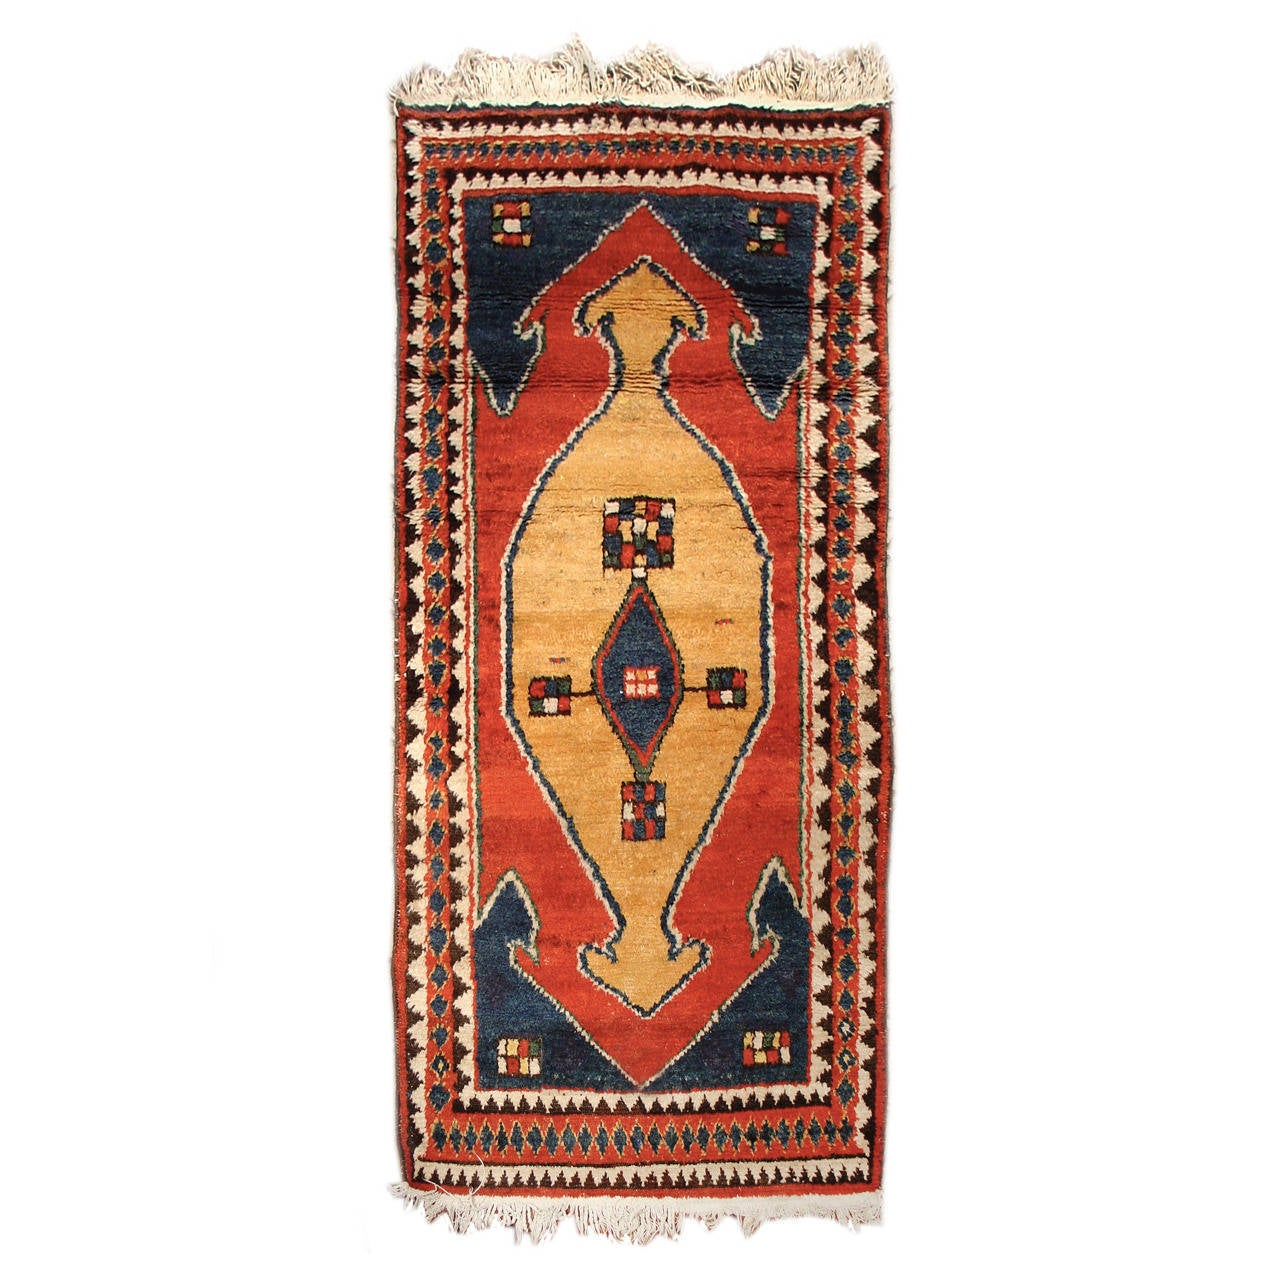 Early 20th Century Red and Tan Vintage Bakhtiari Gabbeh Persian Rug